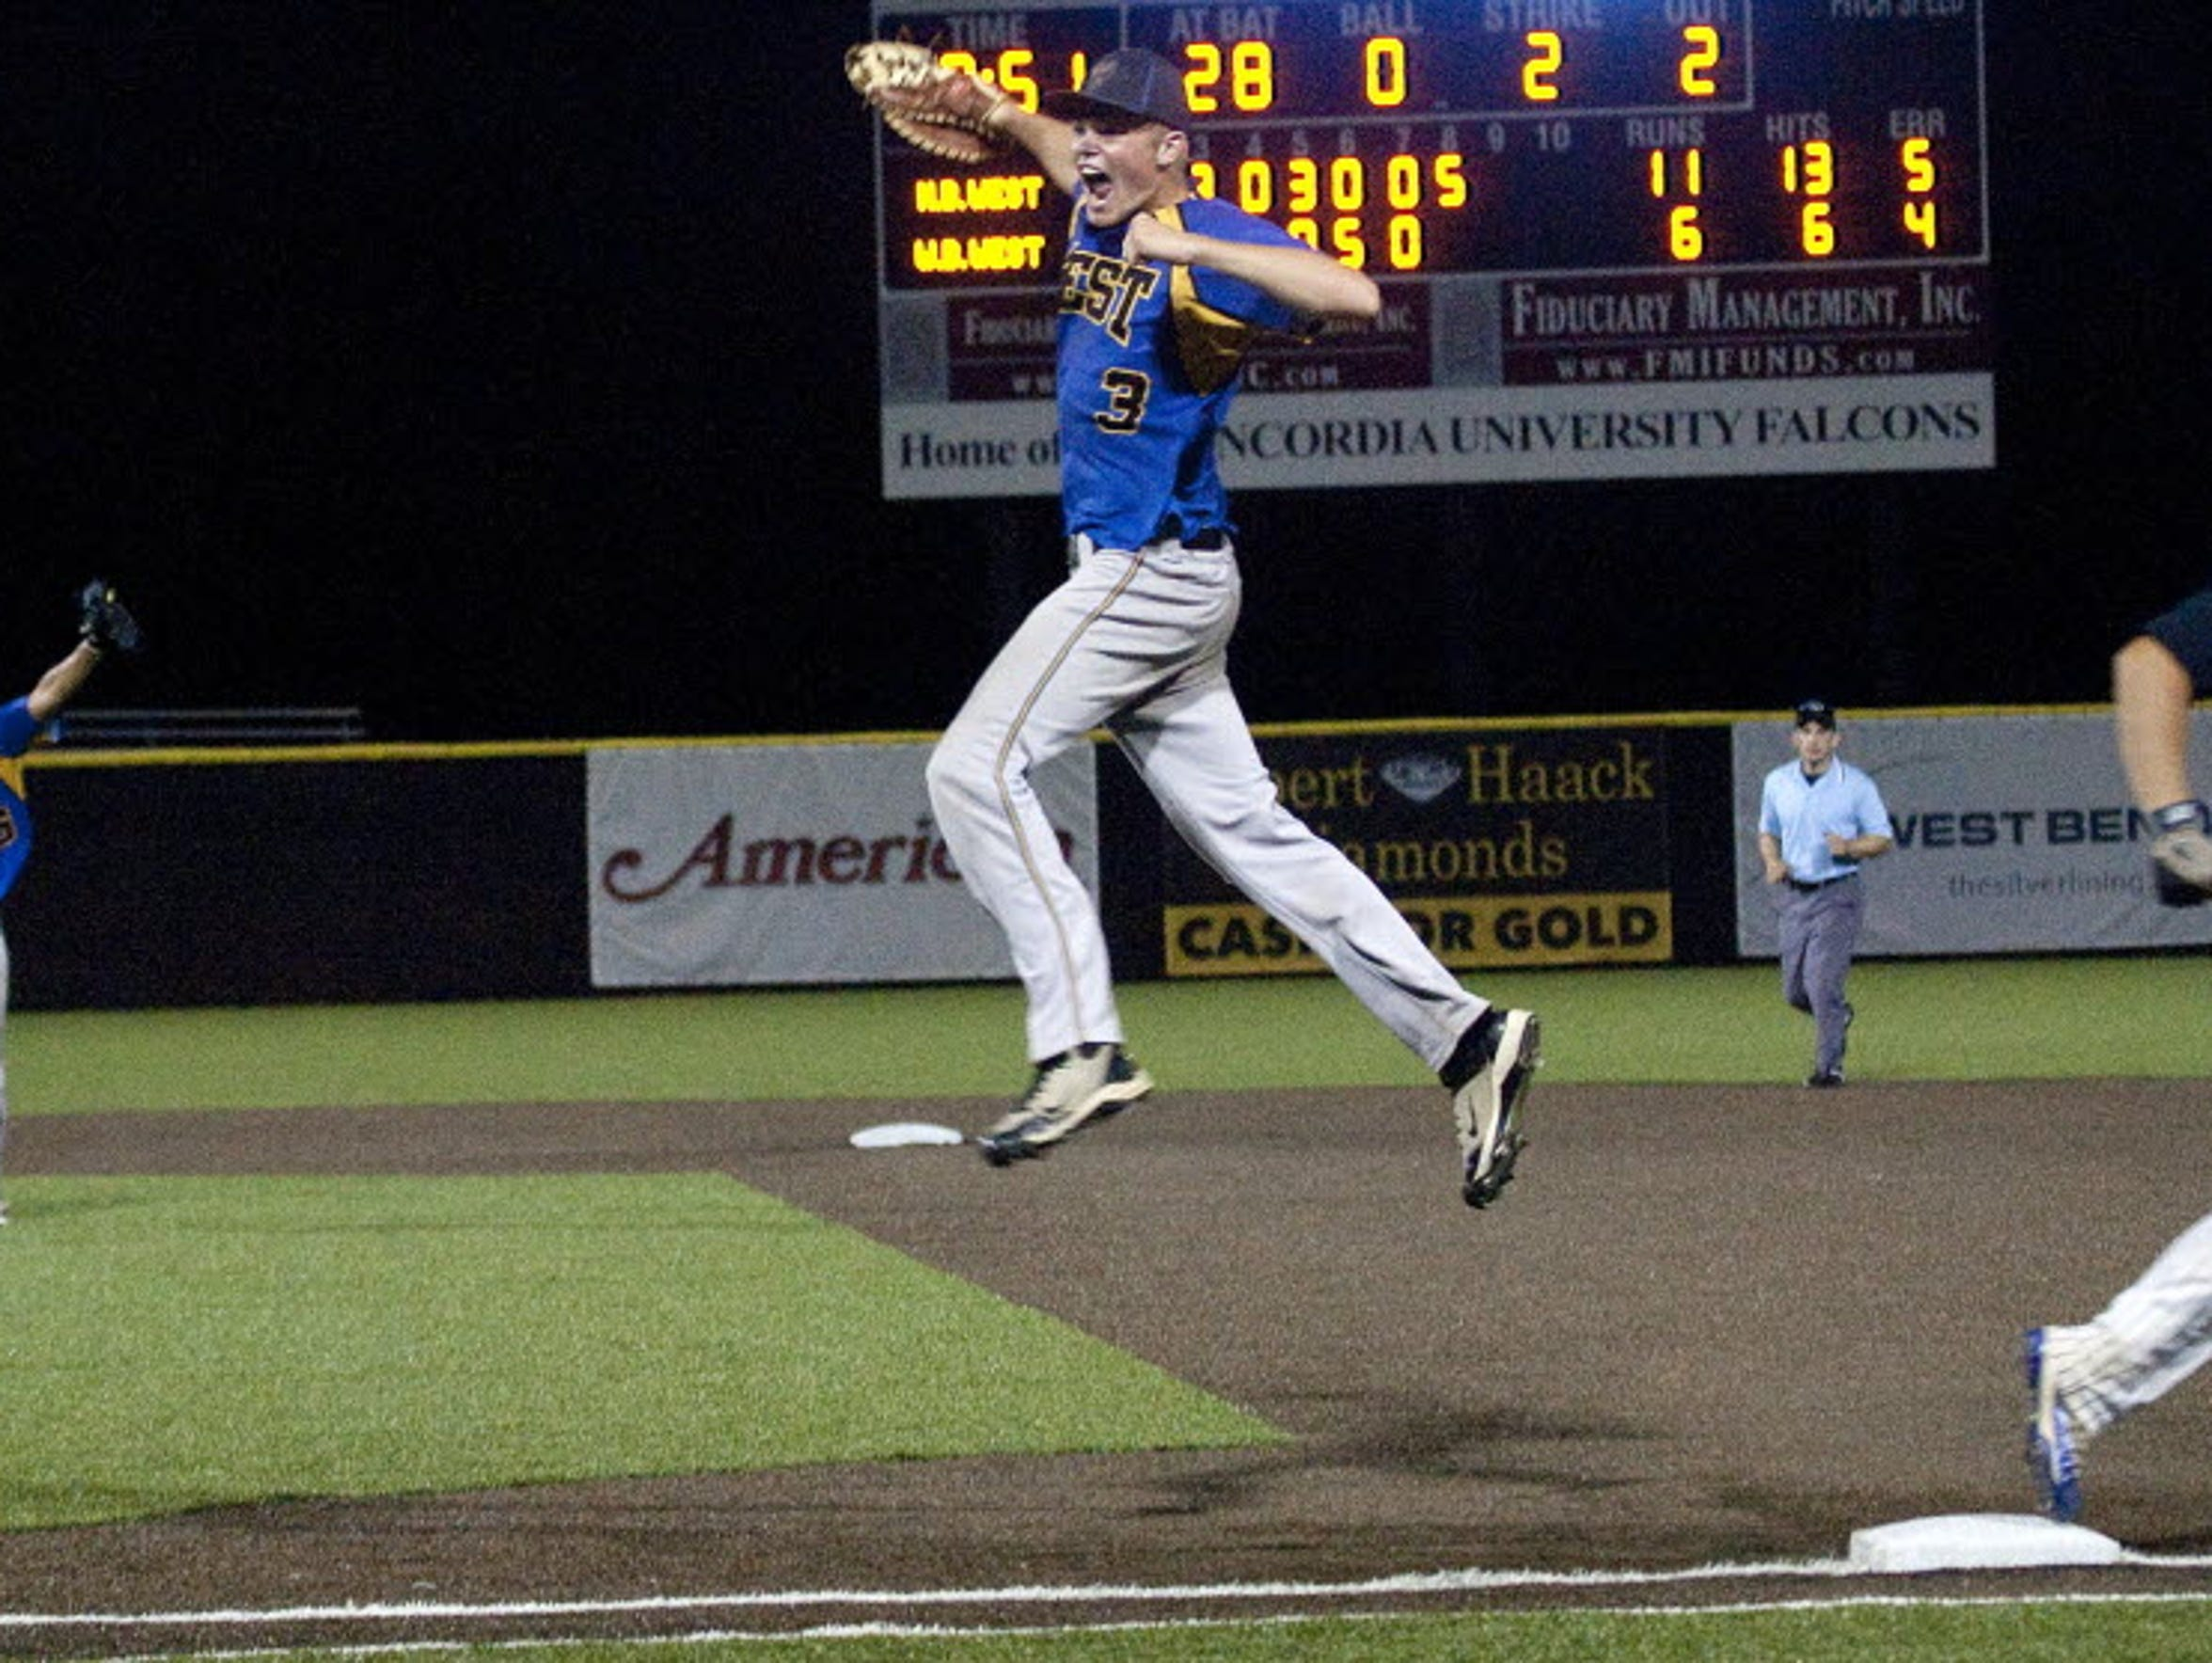 New Berlin West first baseman Andrew Knoll jumped high